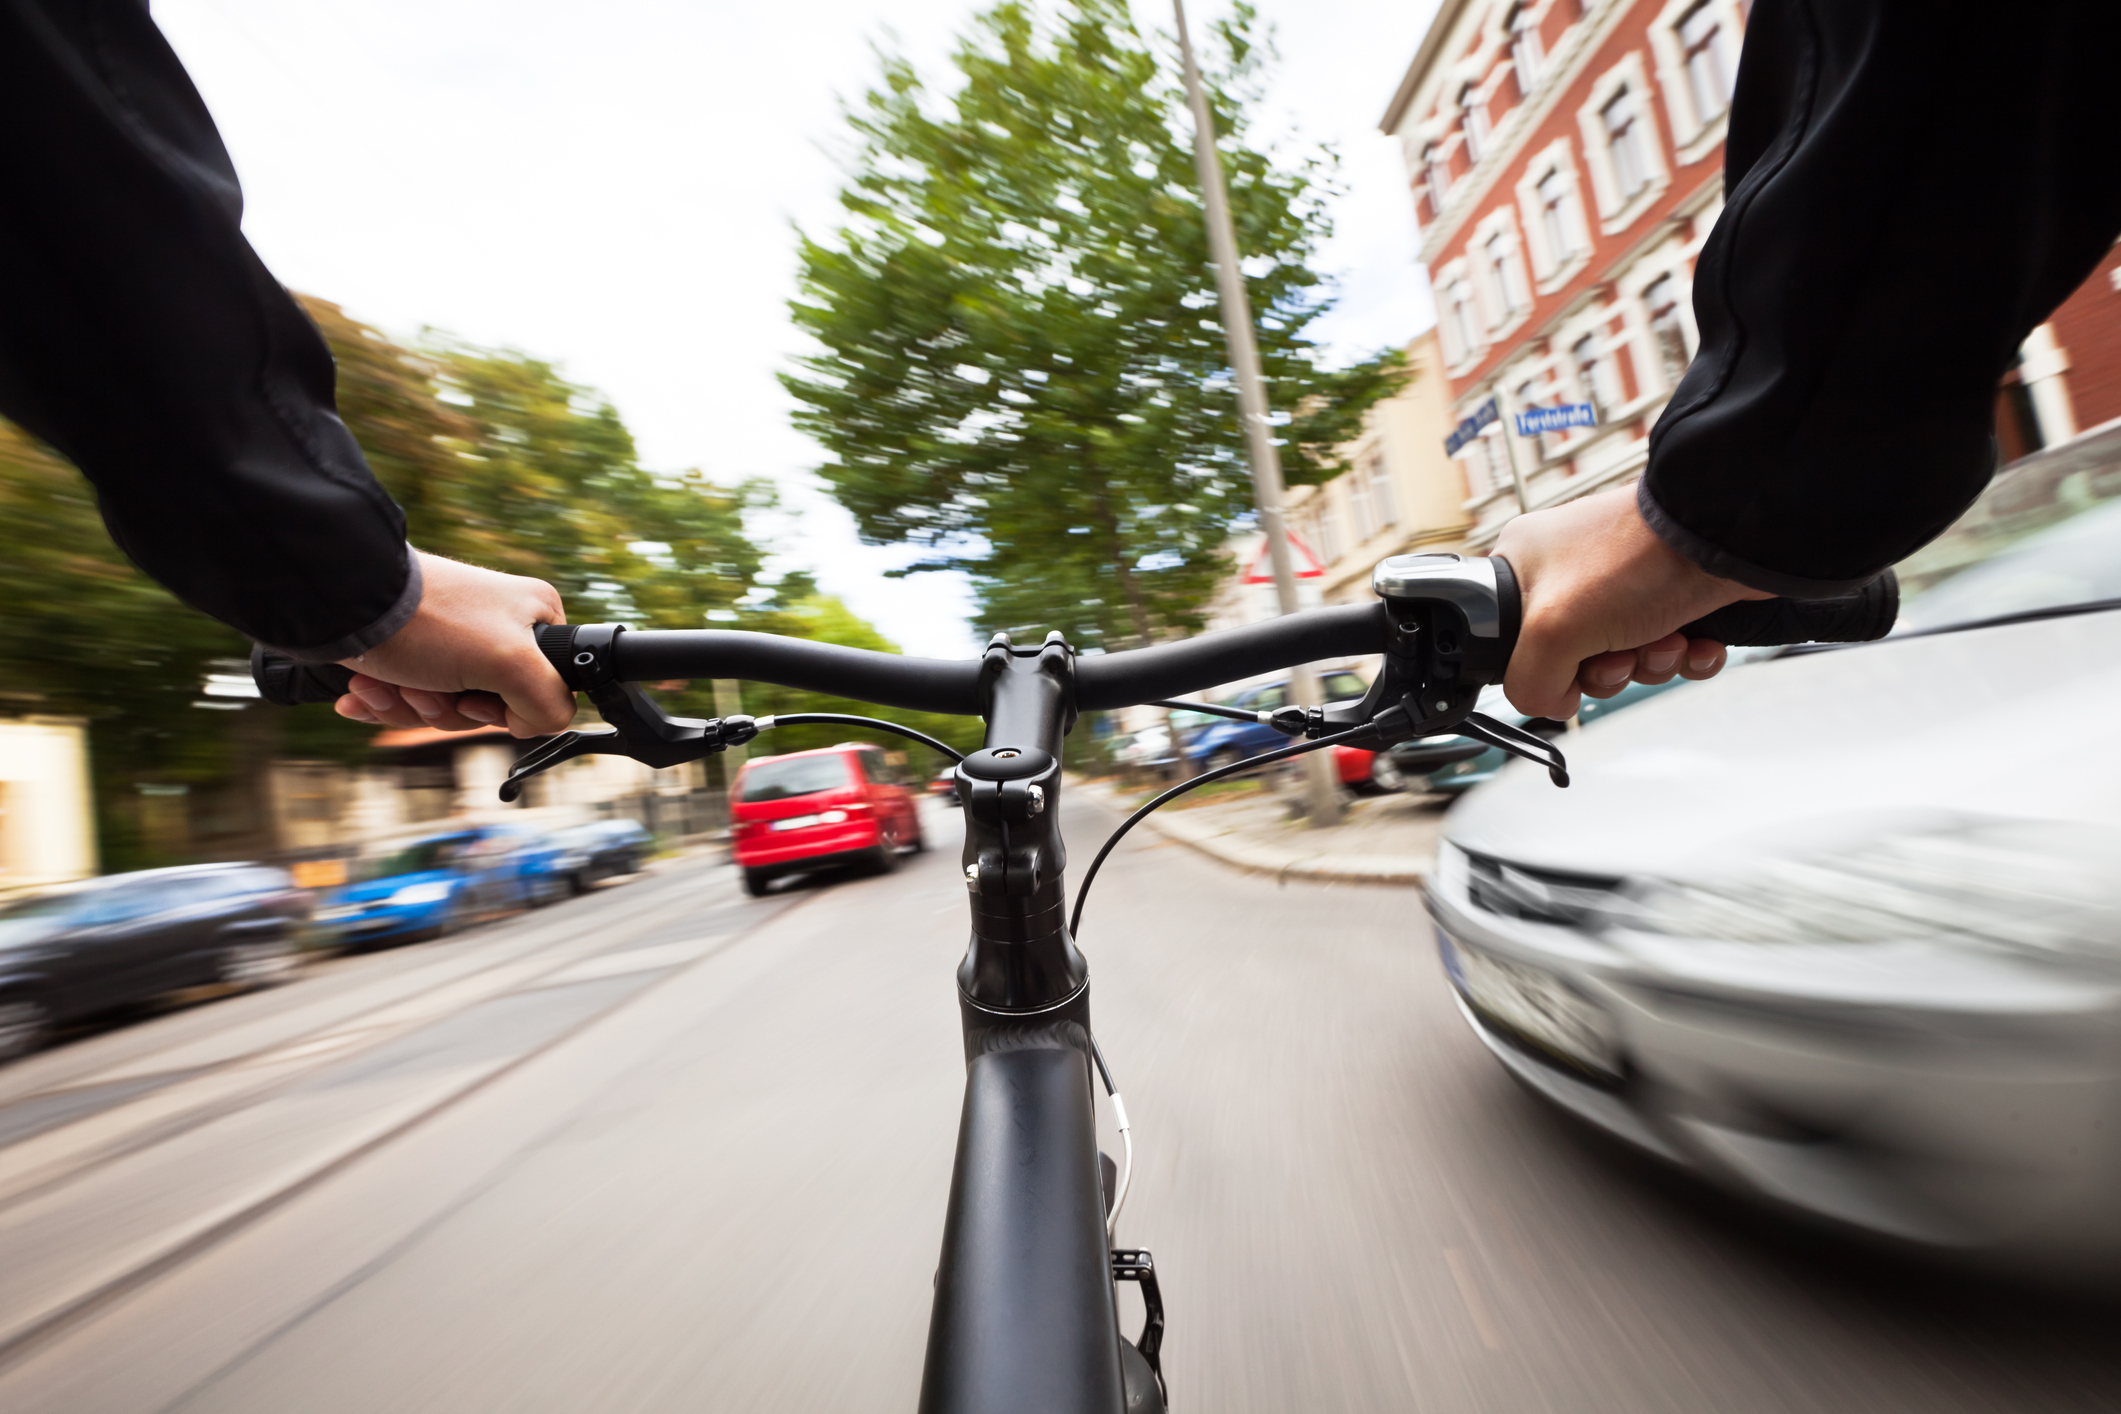 a car almost hitting a bicycle can lead to a bicycle accident